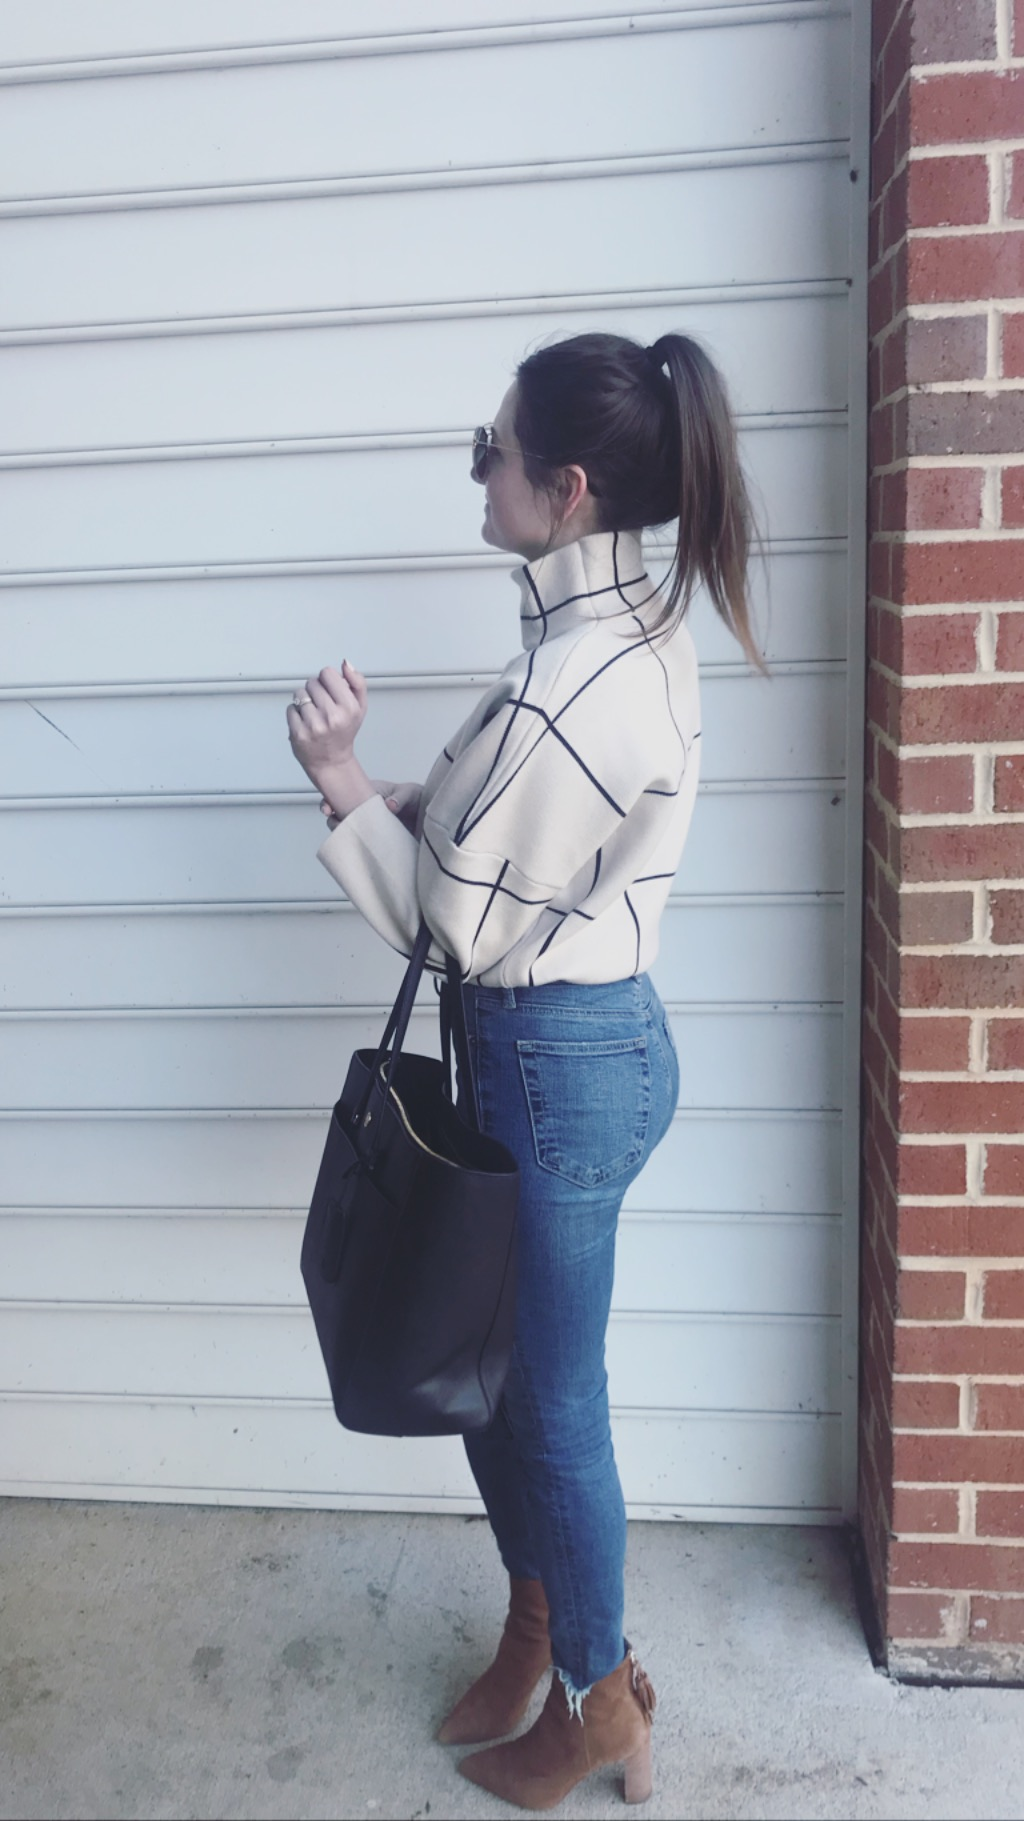 Tory Burch Tote - A bag that has pockets on pockets!